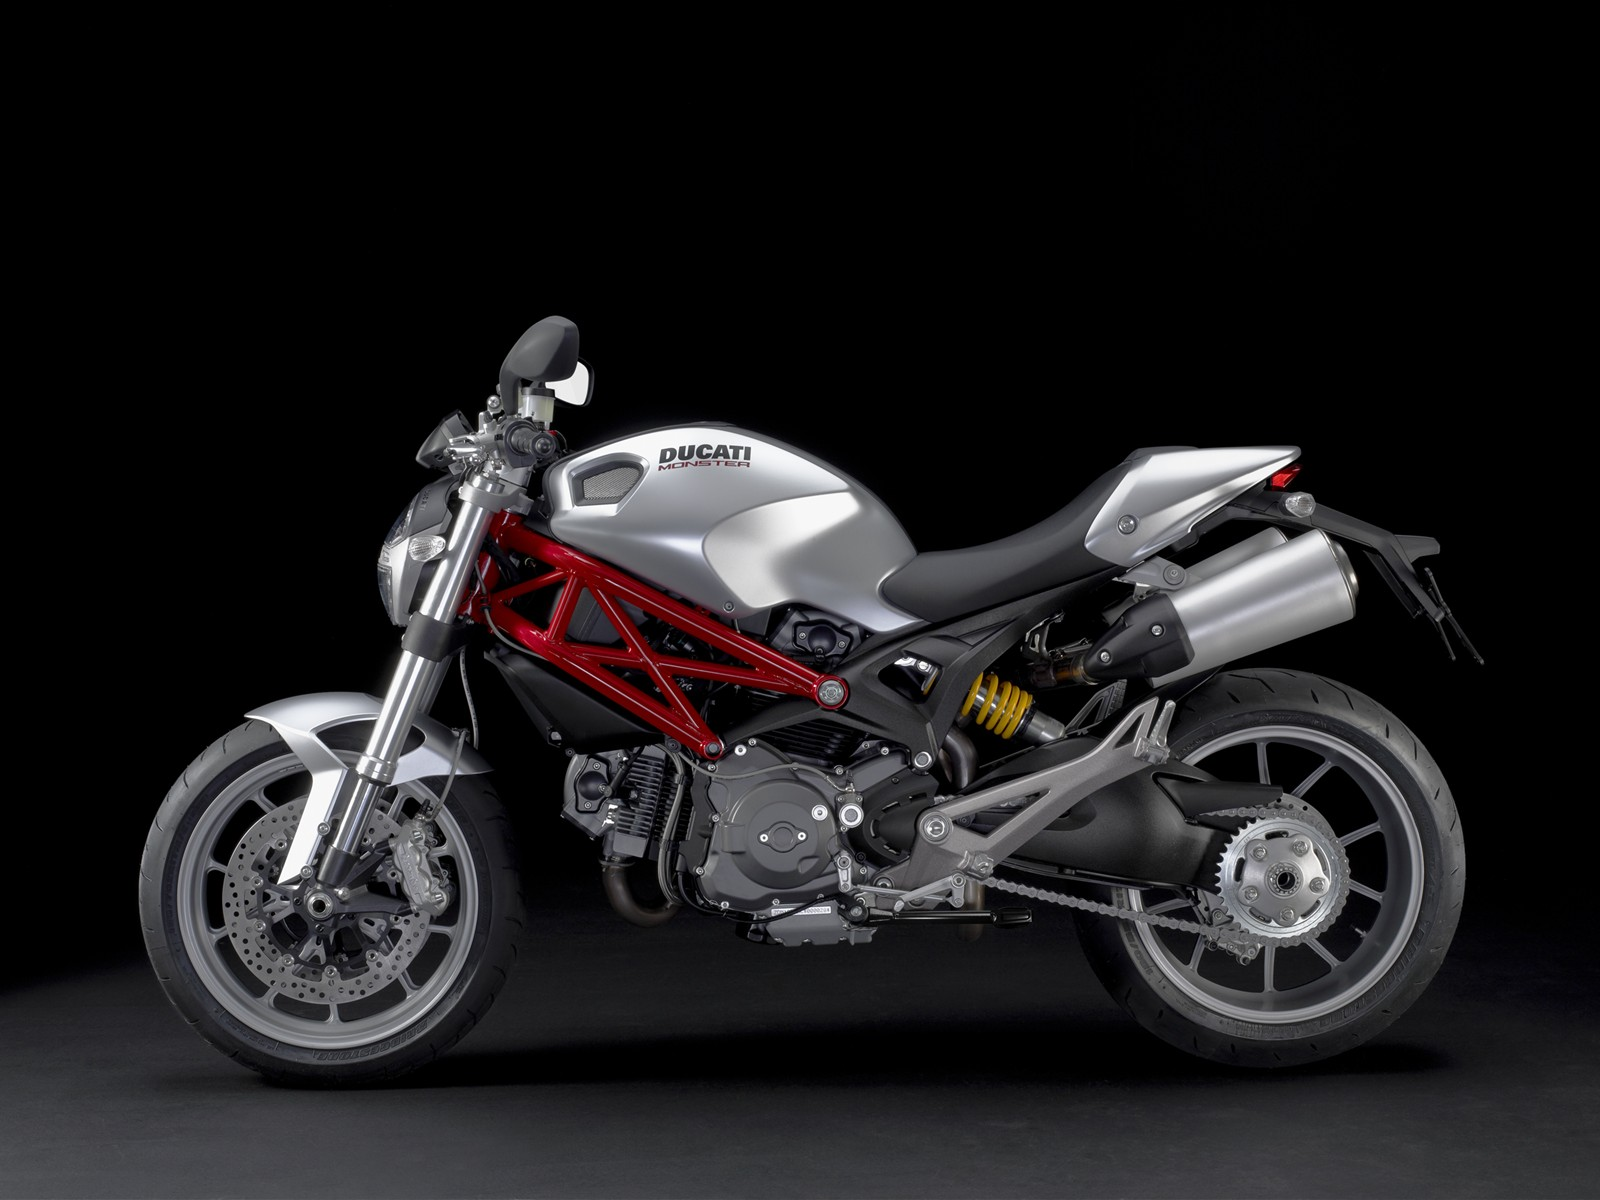 Ducati Monster 1100 Metallic Mix 1728.02 Kb